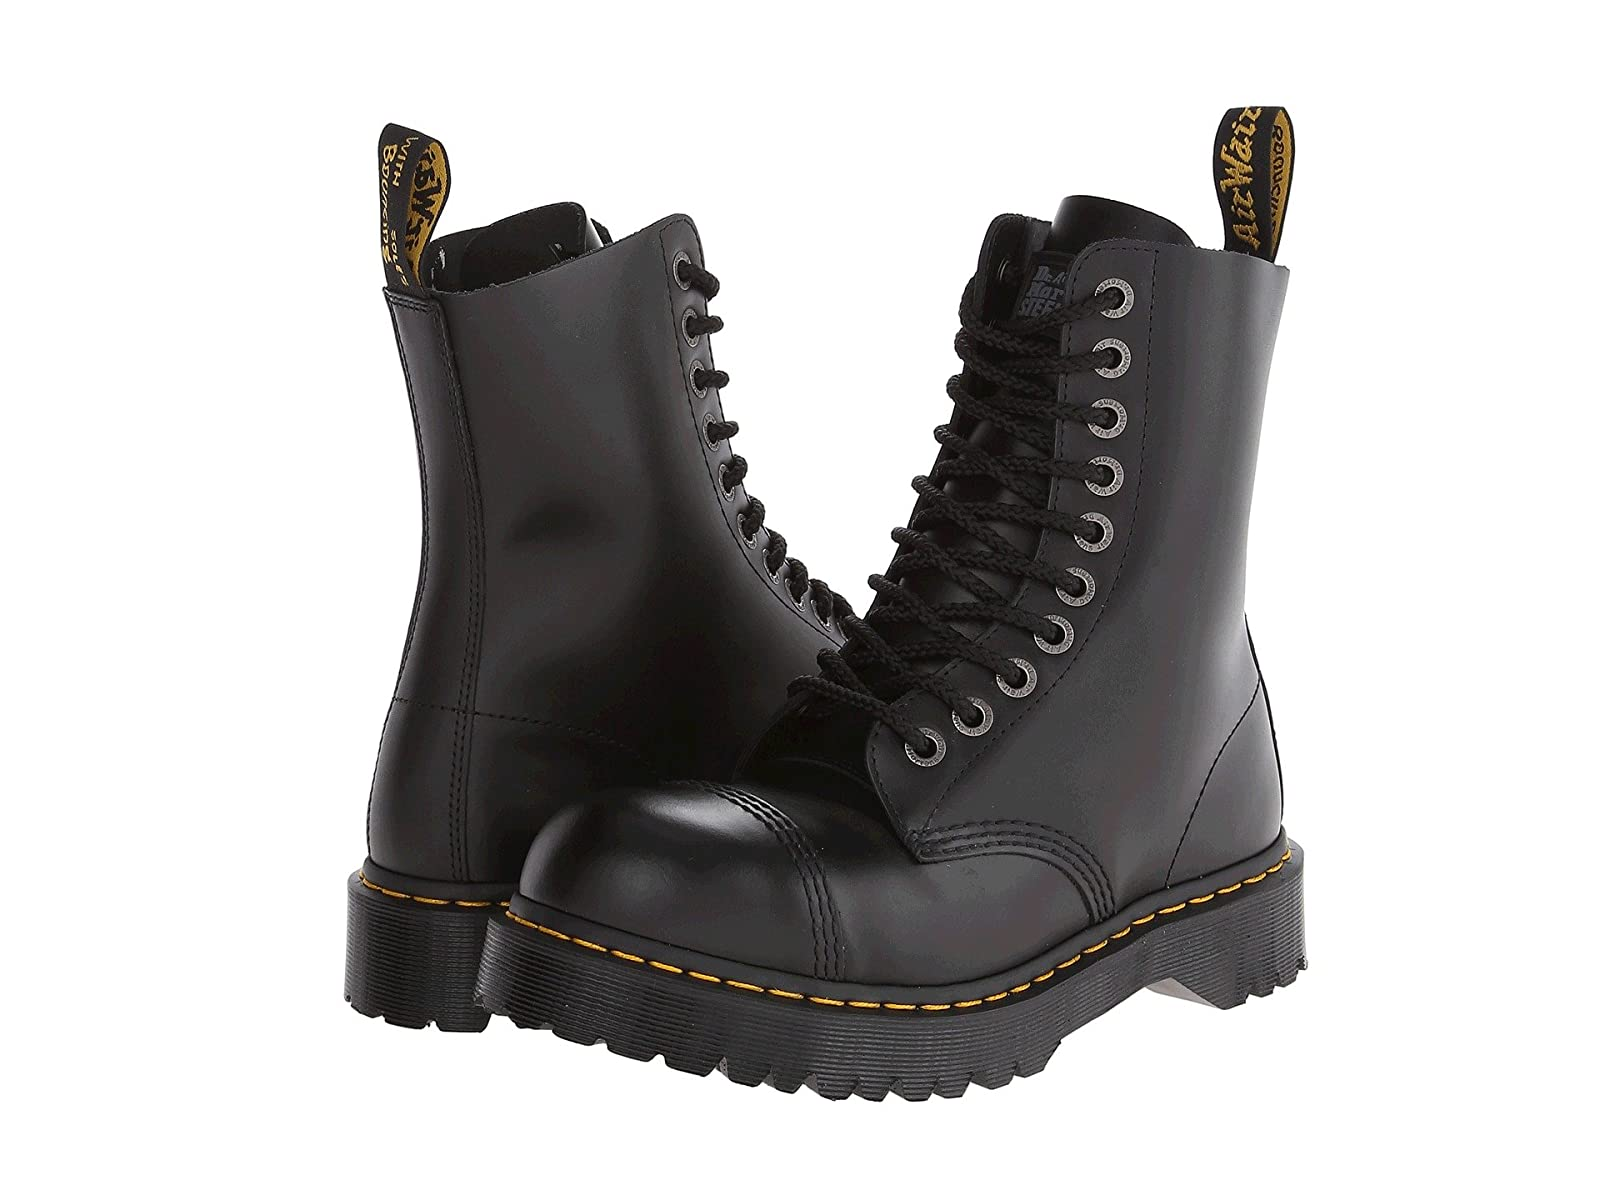 Dr. Martens 8761Affordable and distinctive shoes